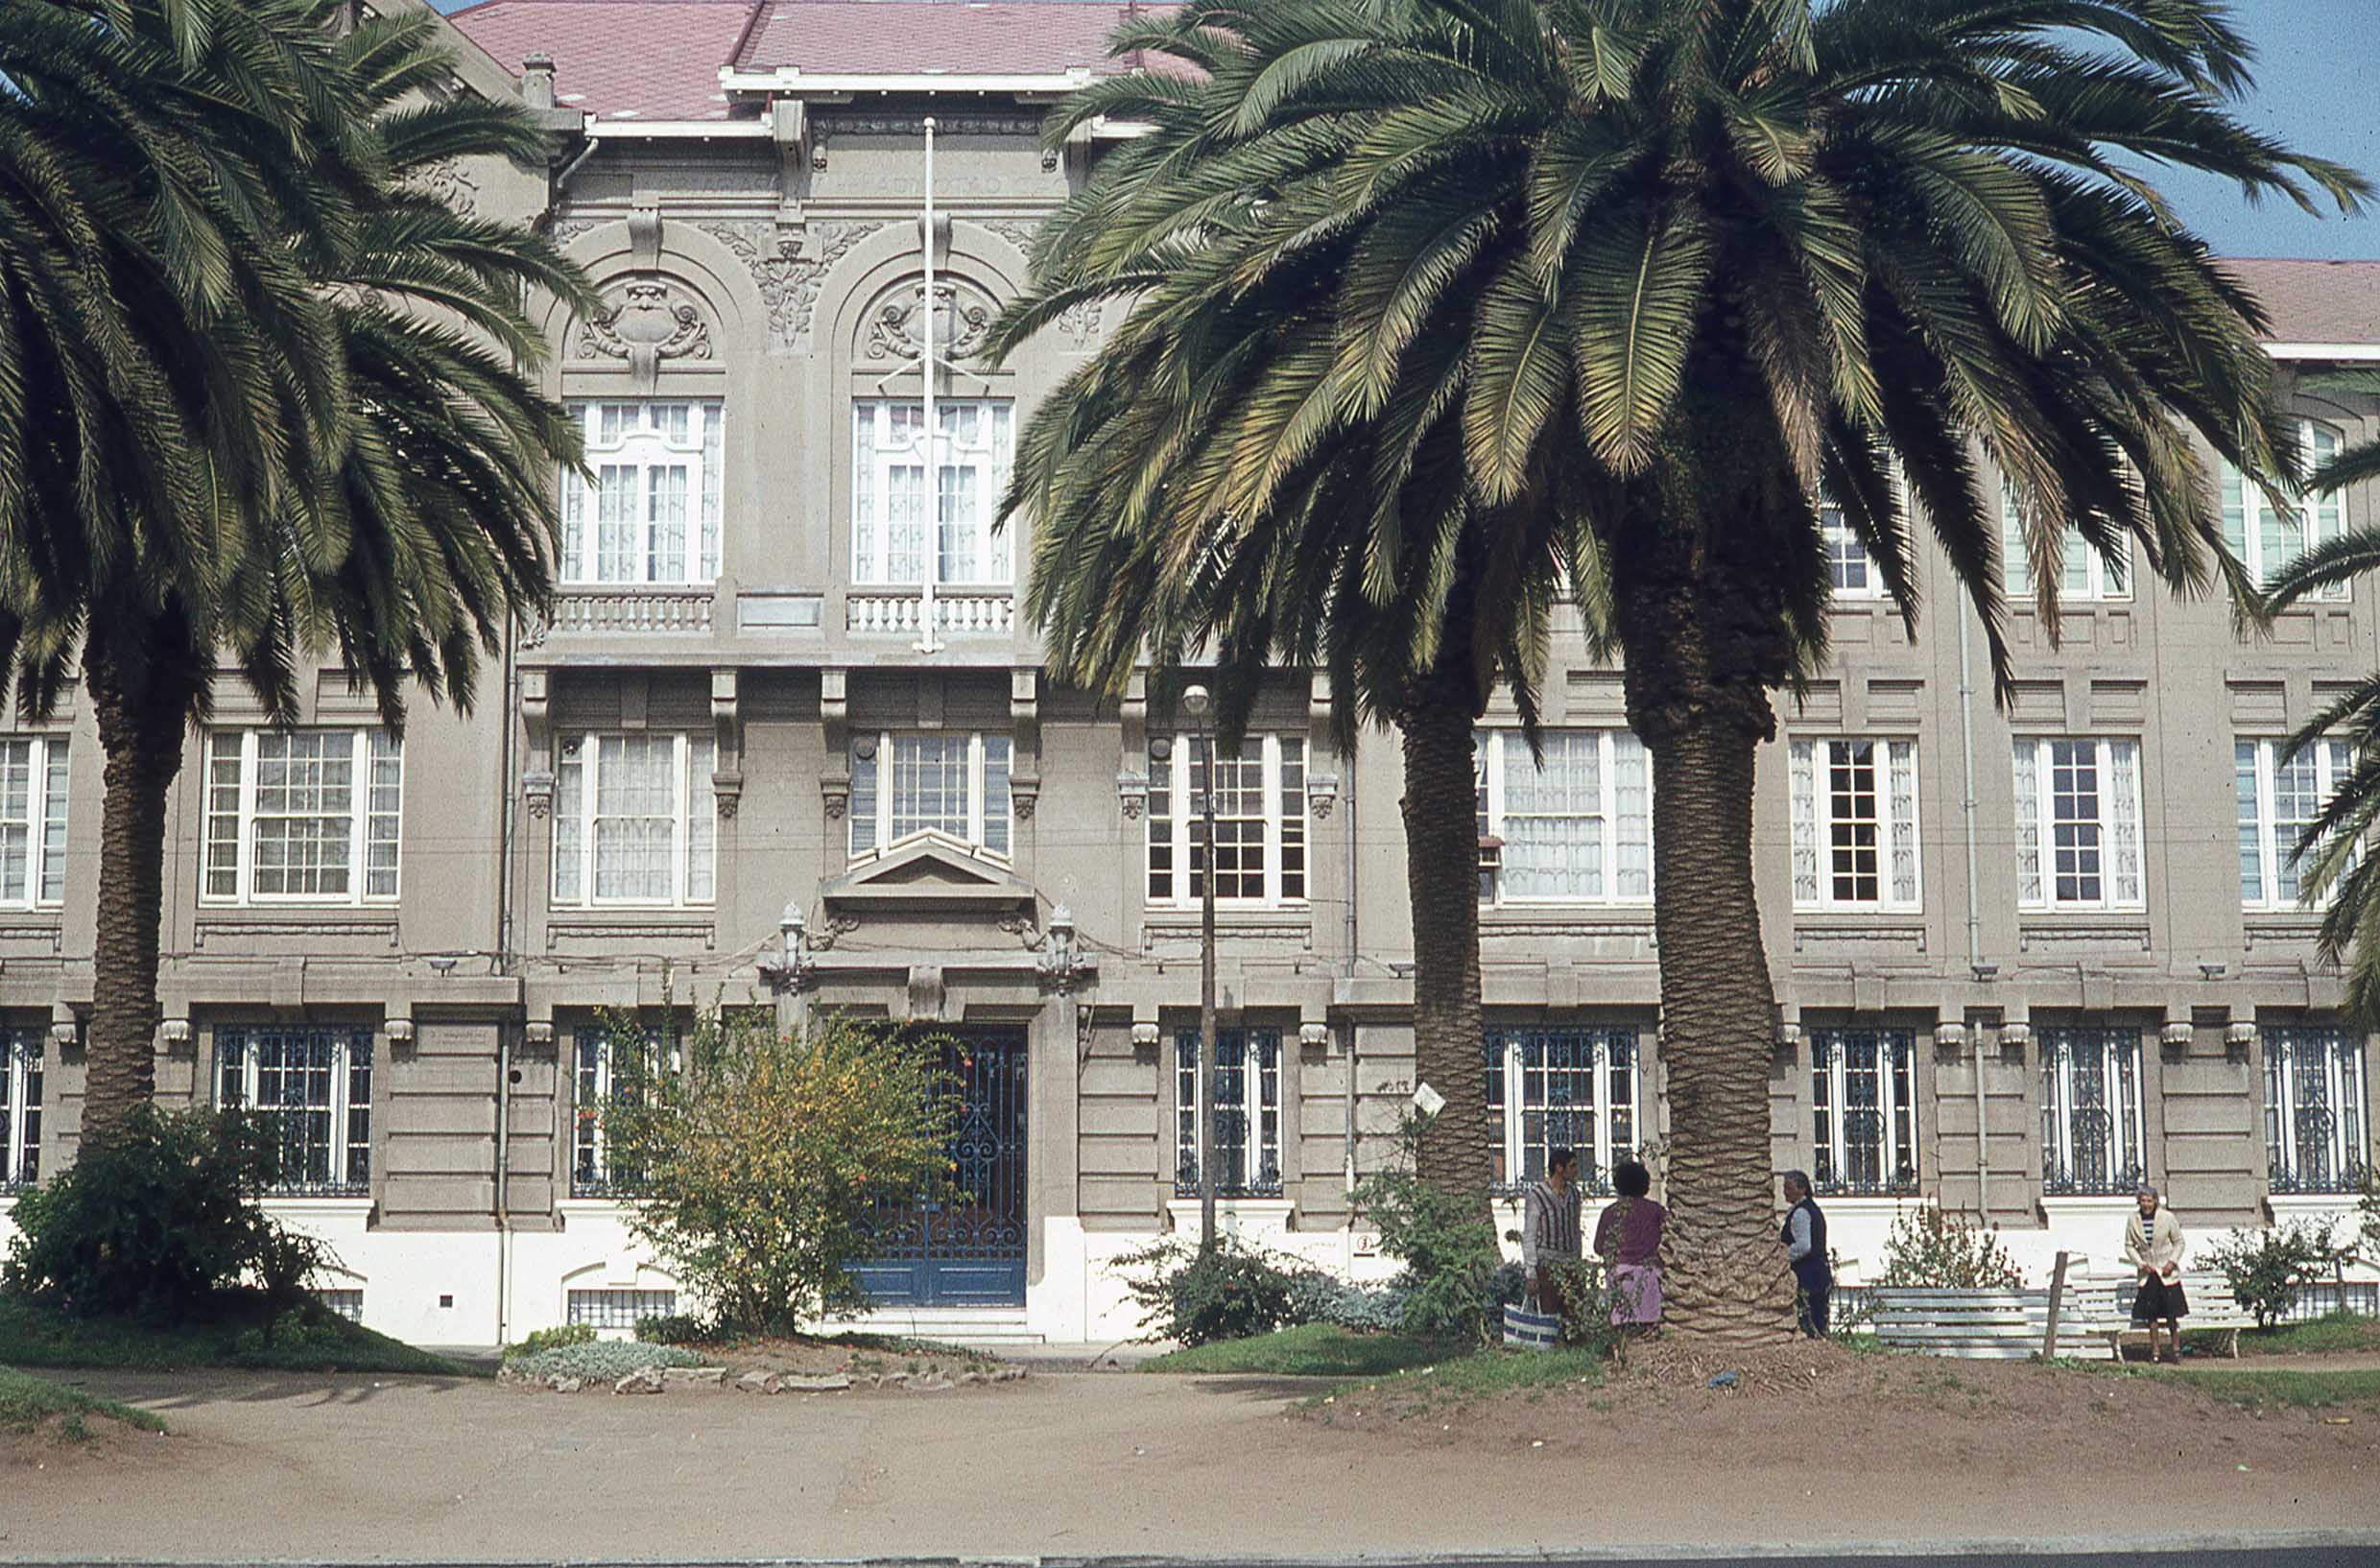 Enterreno - Fotos históricas de chile - fotos antiguas de Chile - Universidad Católica de Valparaíso, 1979